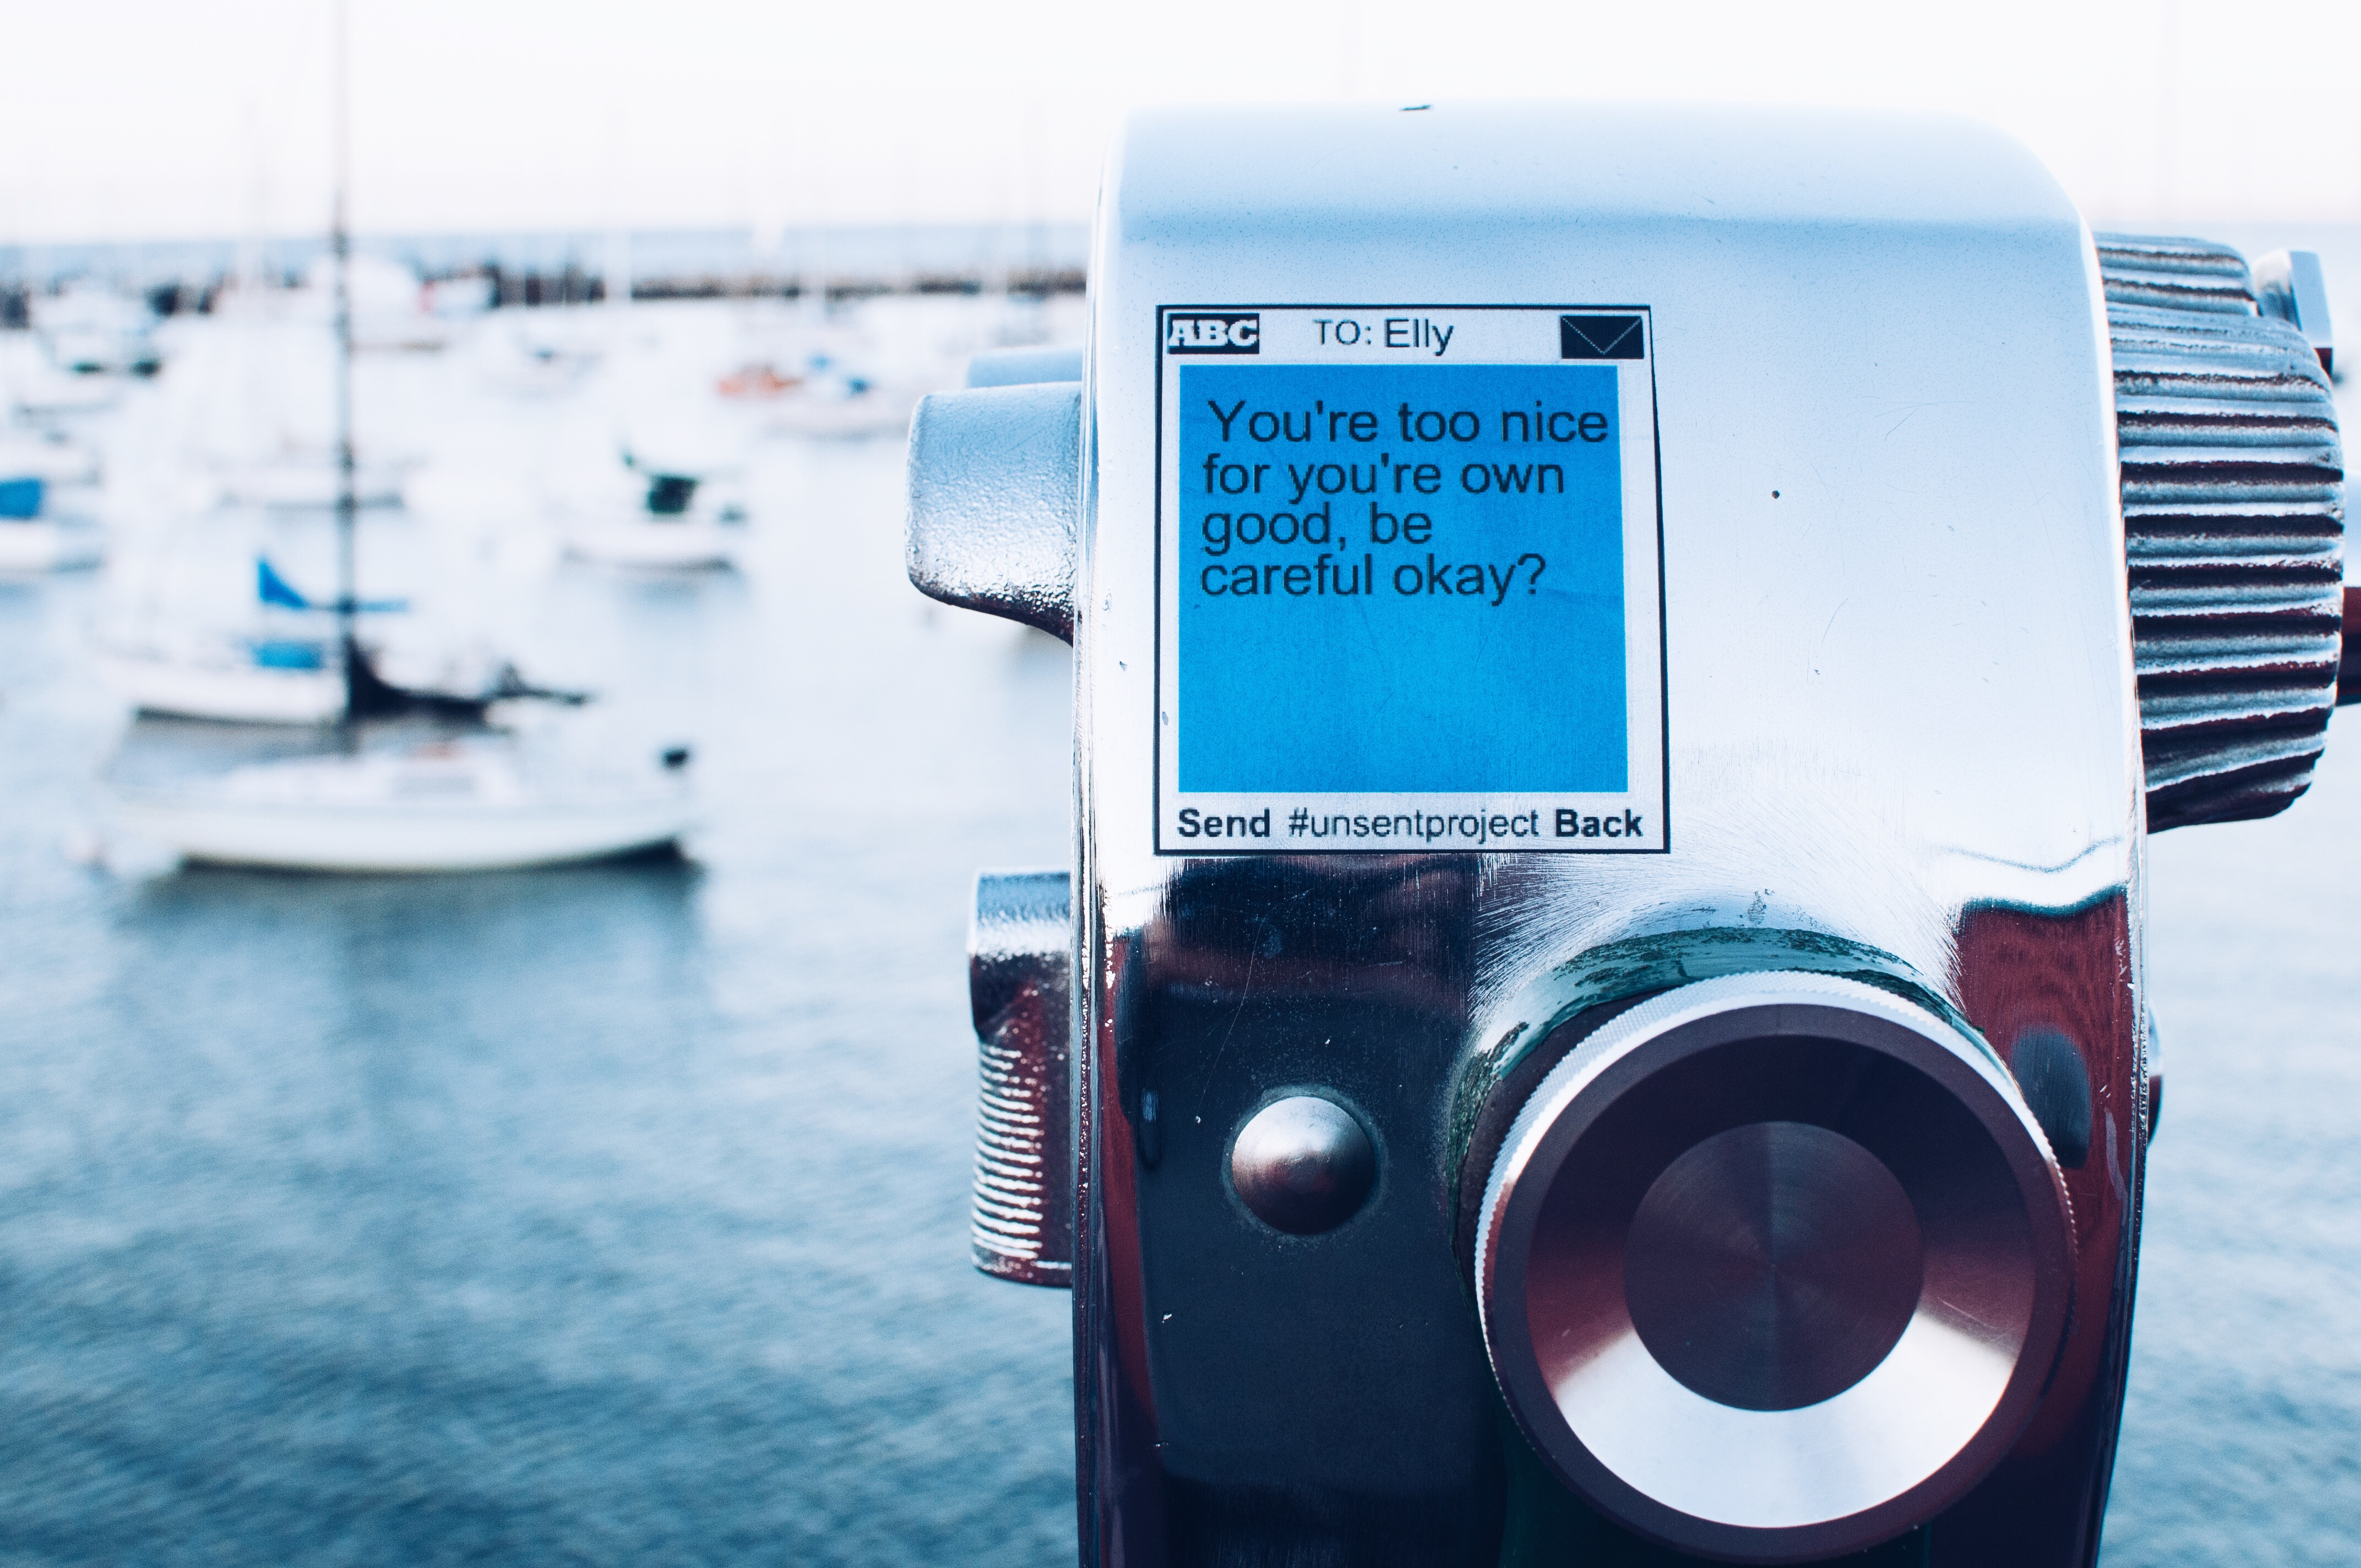 image of a conceptual artpiece transposed over an image of a camera and the ocean